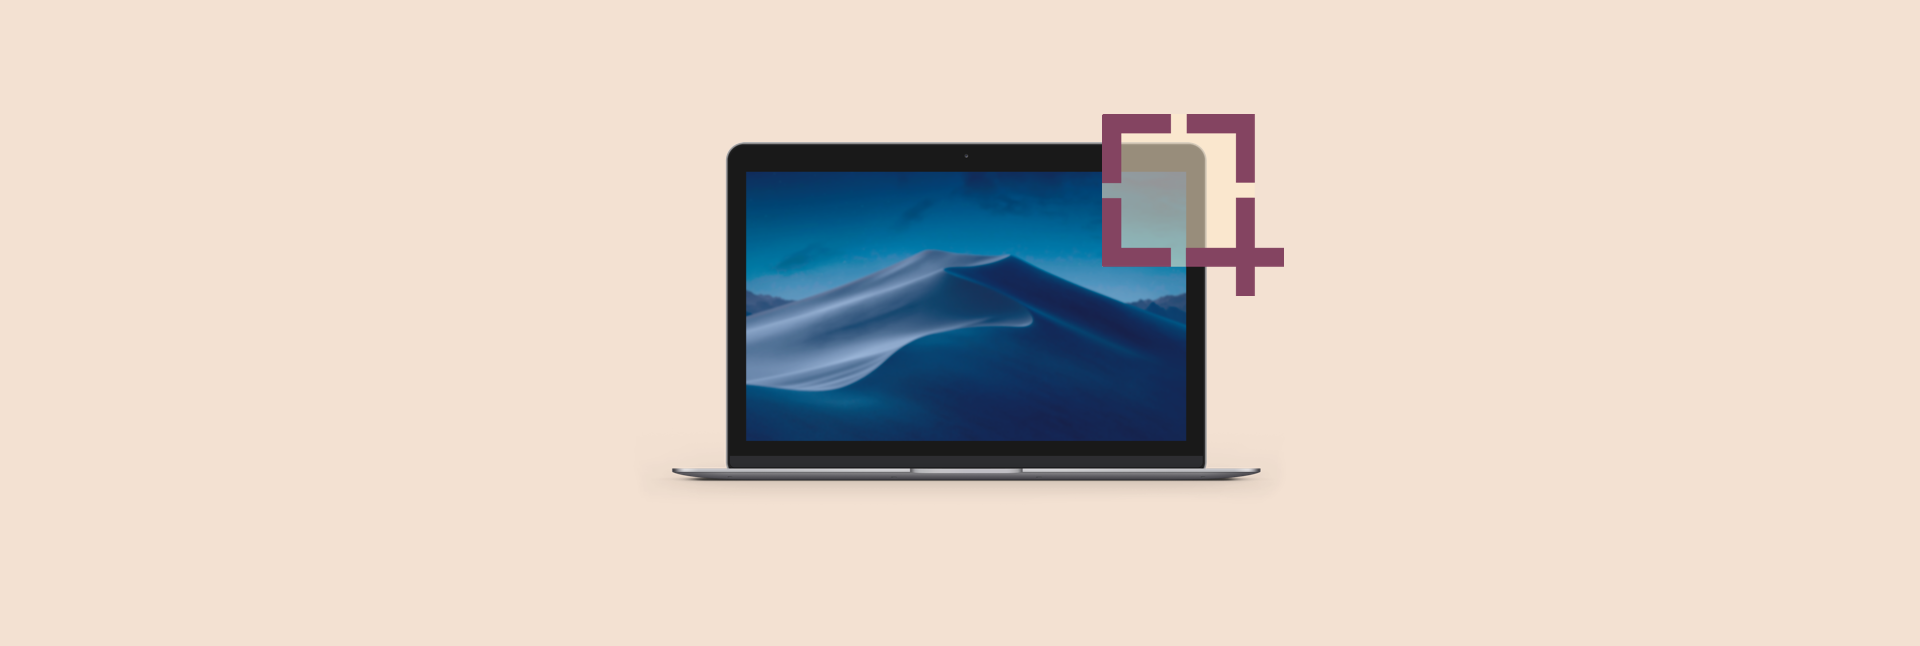 How to screenshot on Mac: The ultimate guide 11